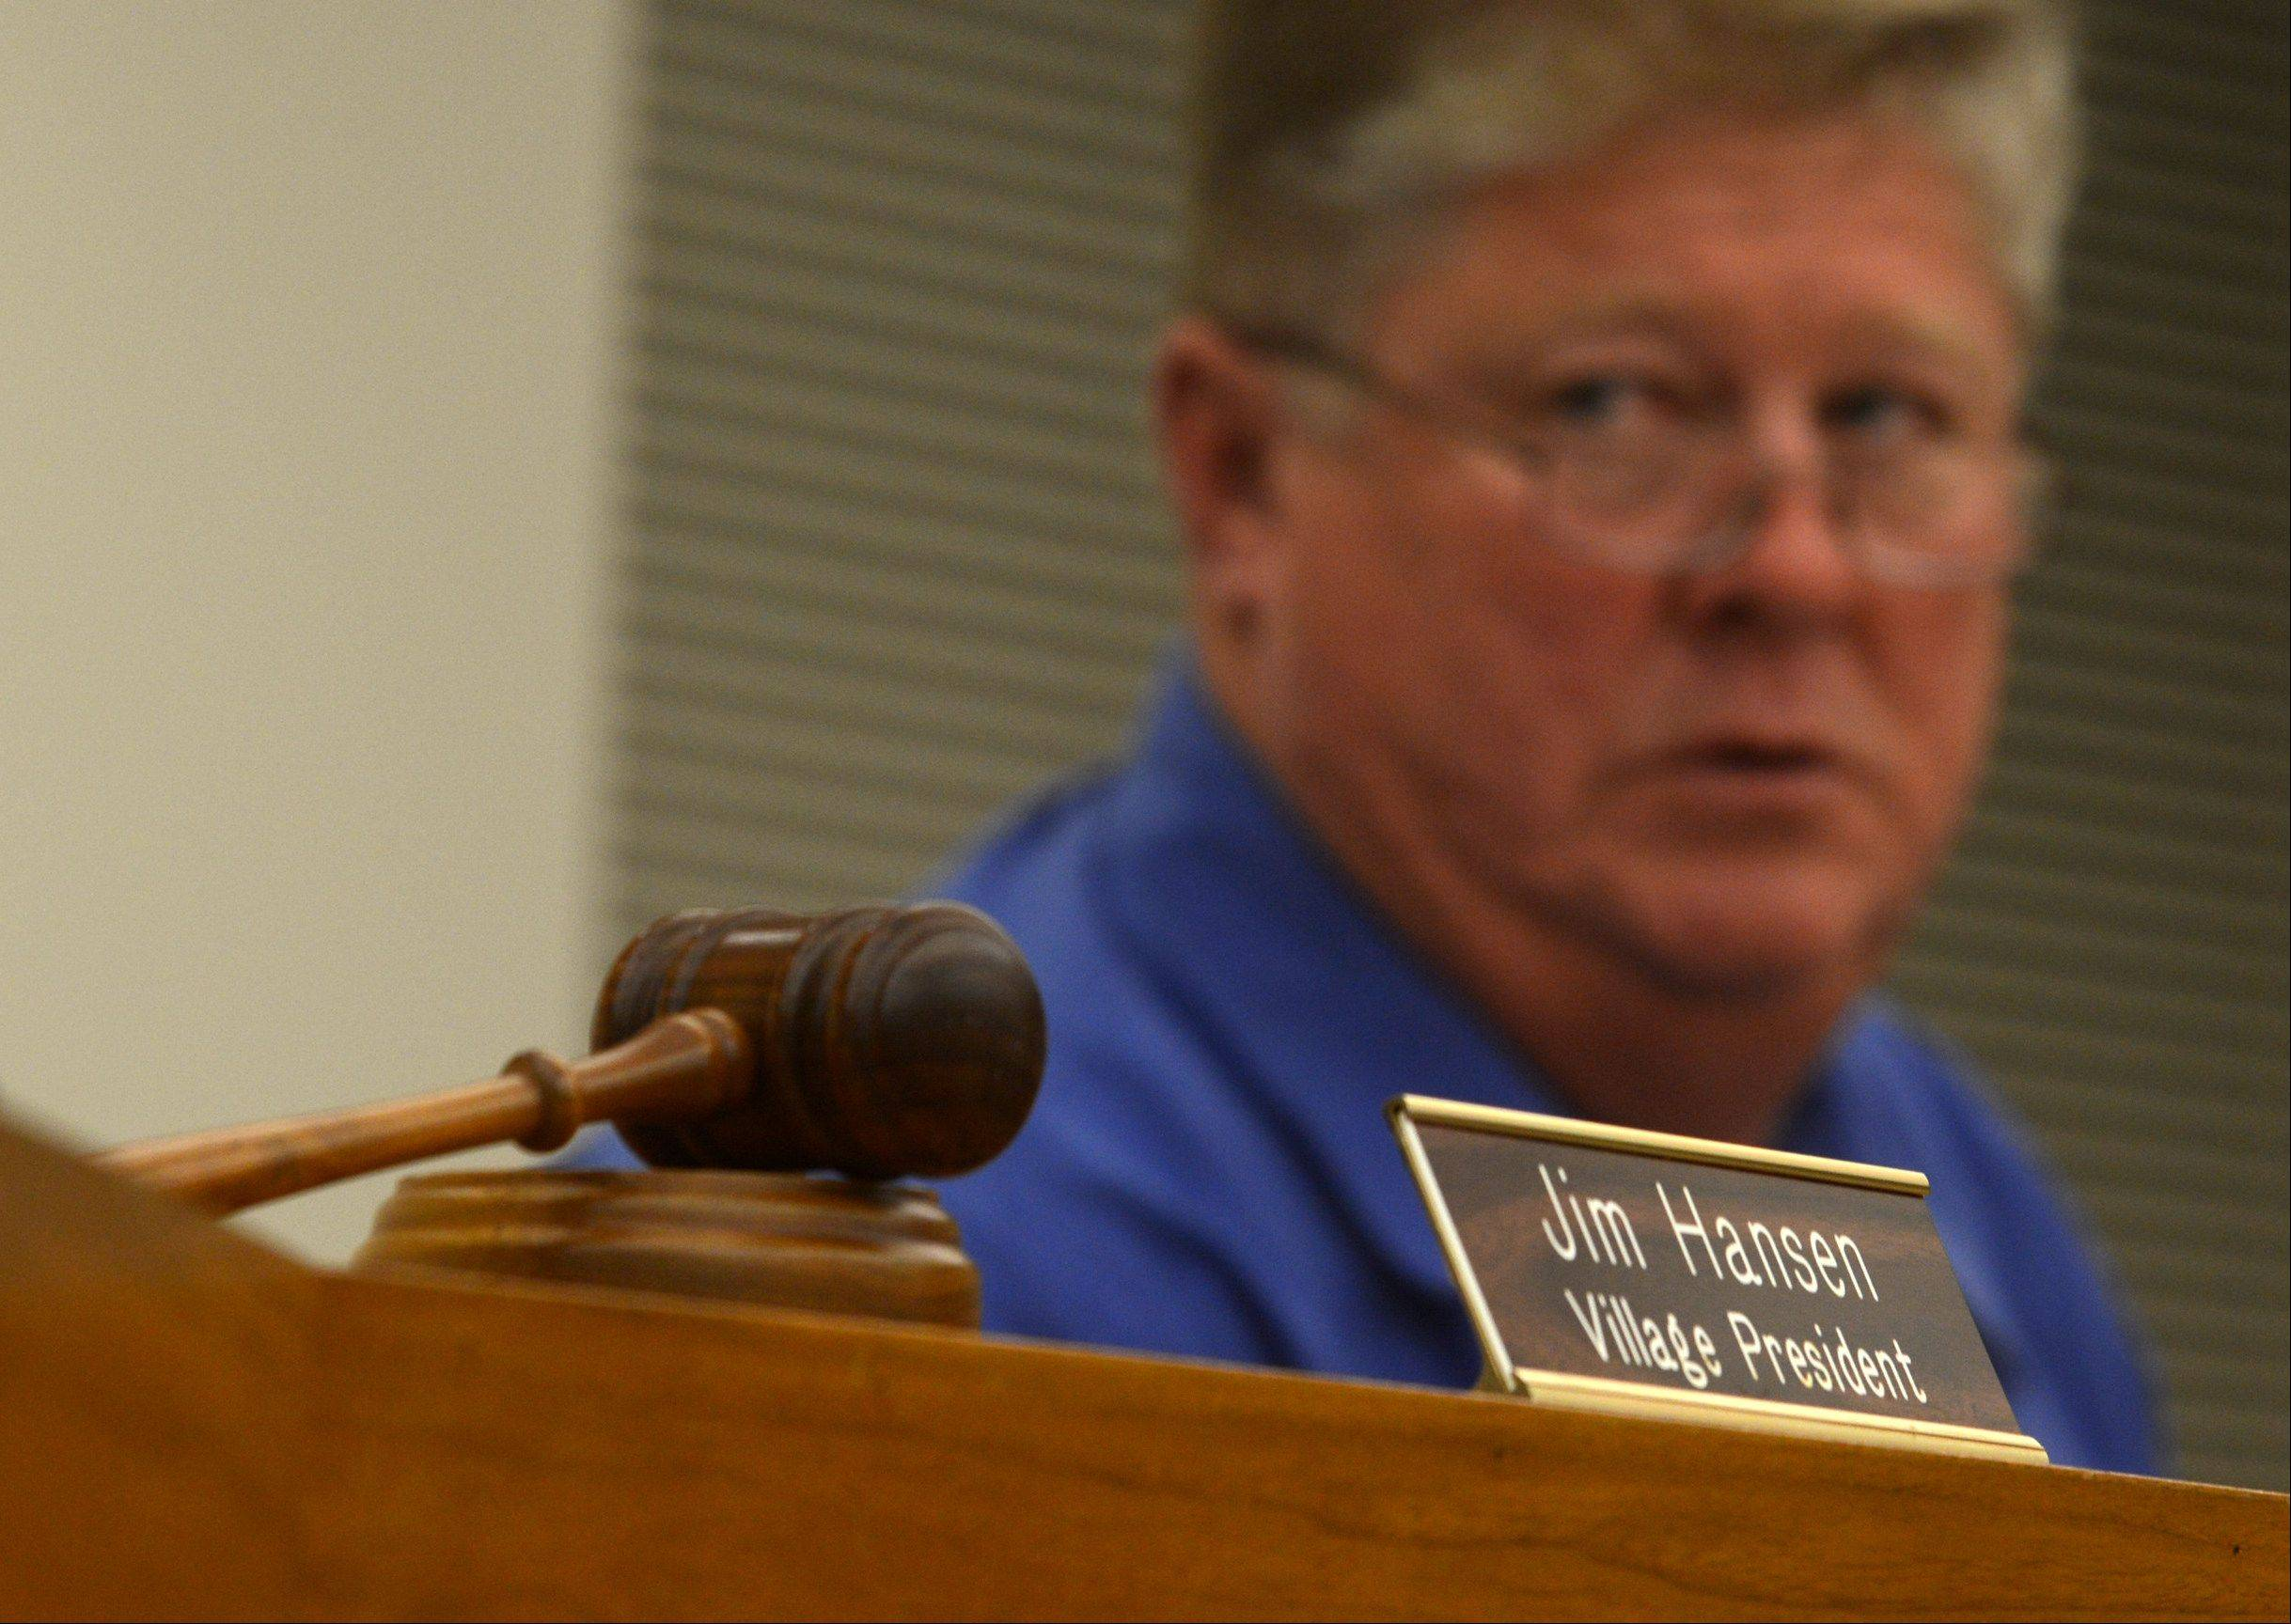 Village President Jim Hansen was remembered during a village board meeting in South Elgin on Monday night. Here, acting President for Monday night's meeting Trustee John Sweet looks past Hansen's vacant chair.